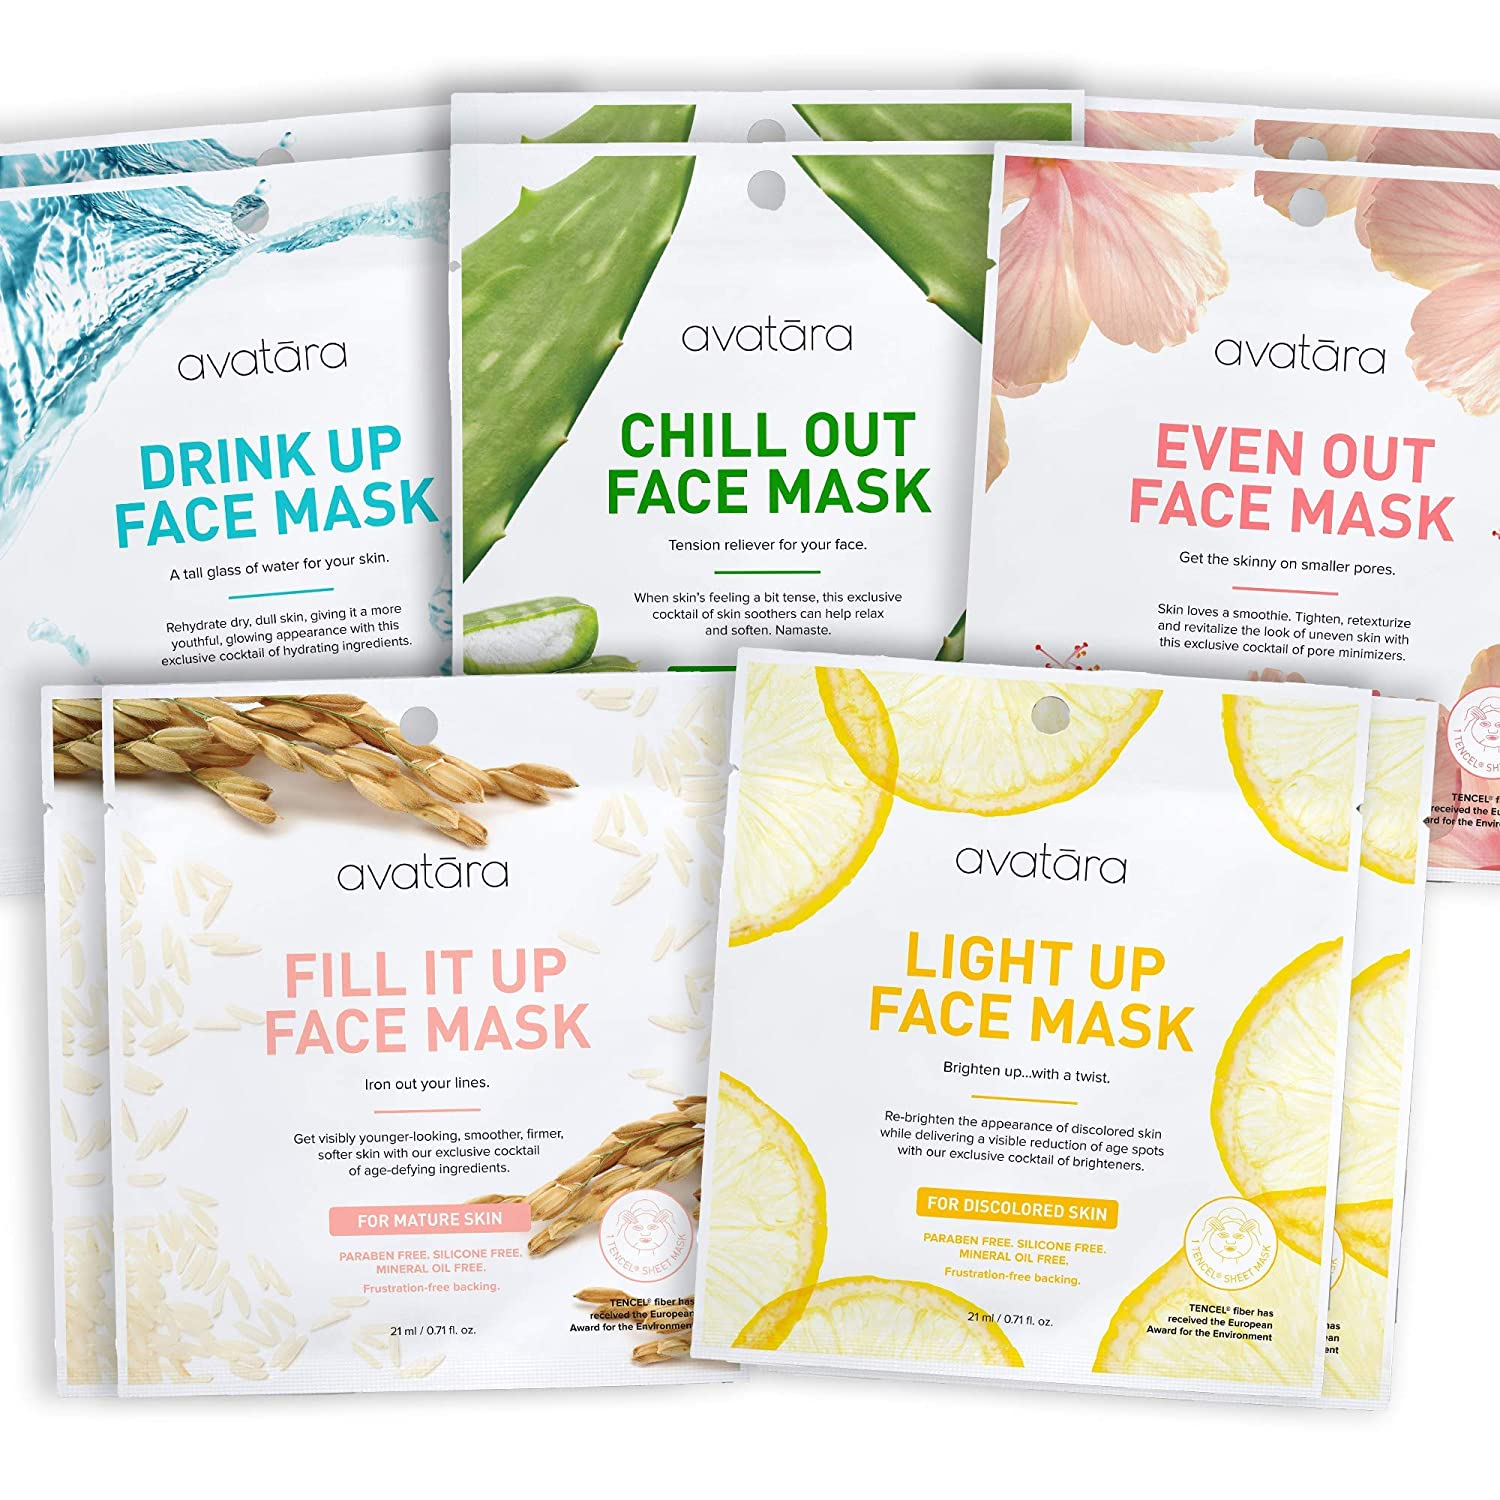 Avatara Facial Face Mask Variety Pack (10 Sheets) - Hydrate, Brighten, Even Out, Relax, Iron Out Fine Lines, Shrink Pores